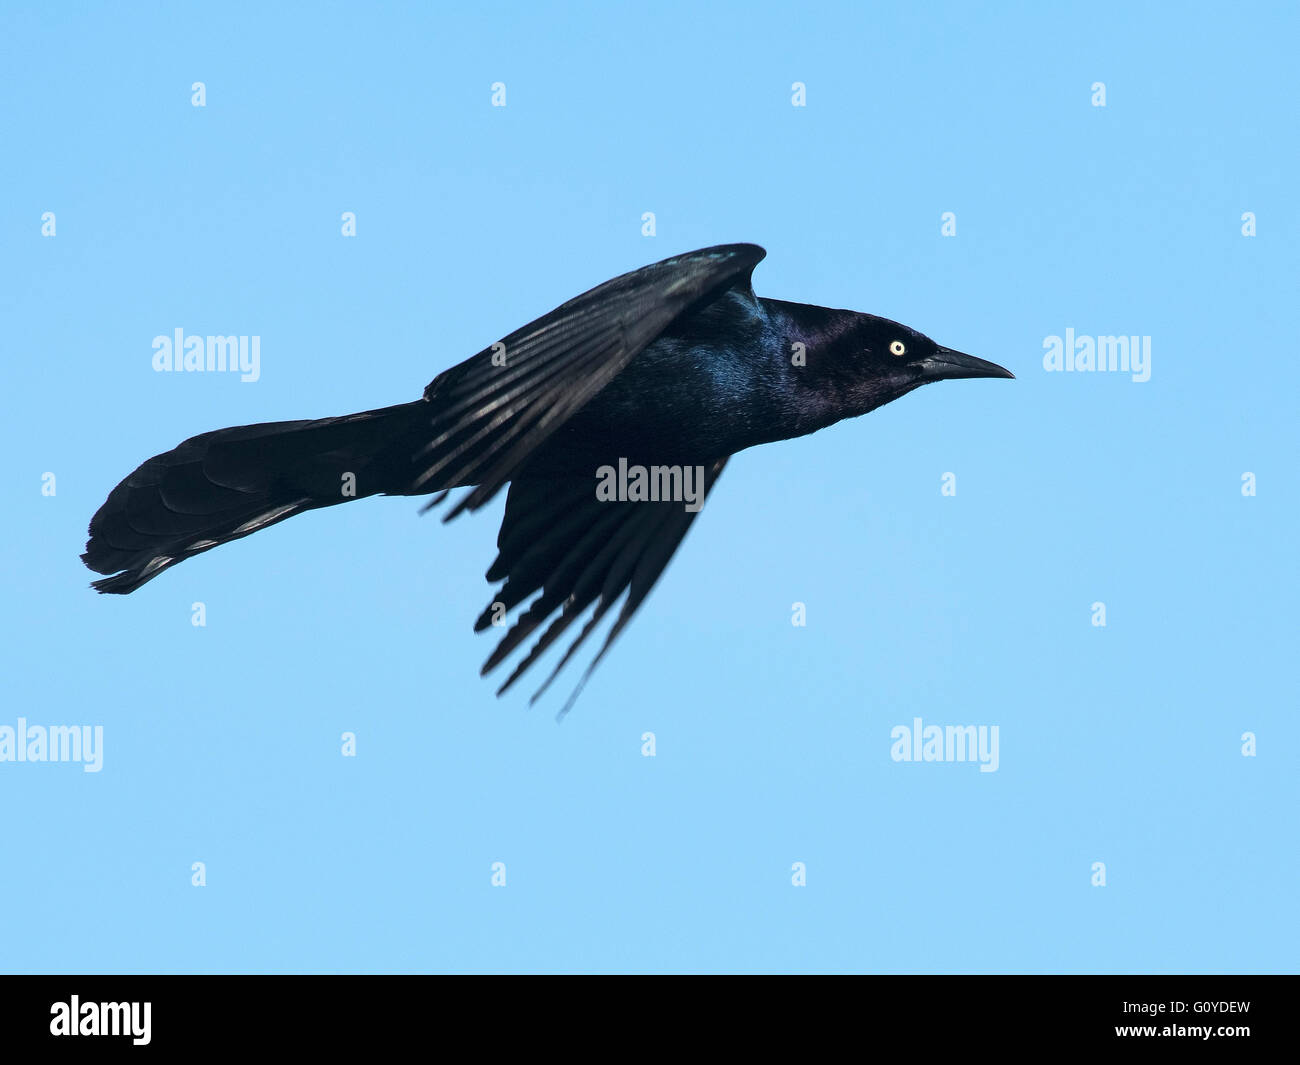 Grackle Stock Photos & Grackle Stock Images - Alamy  Grackle Stock P...